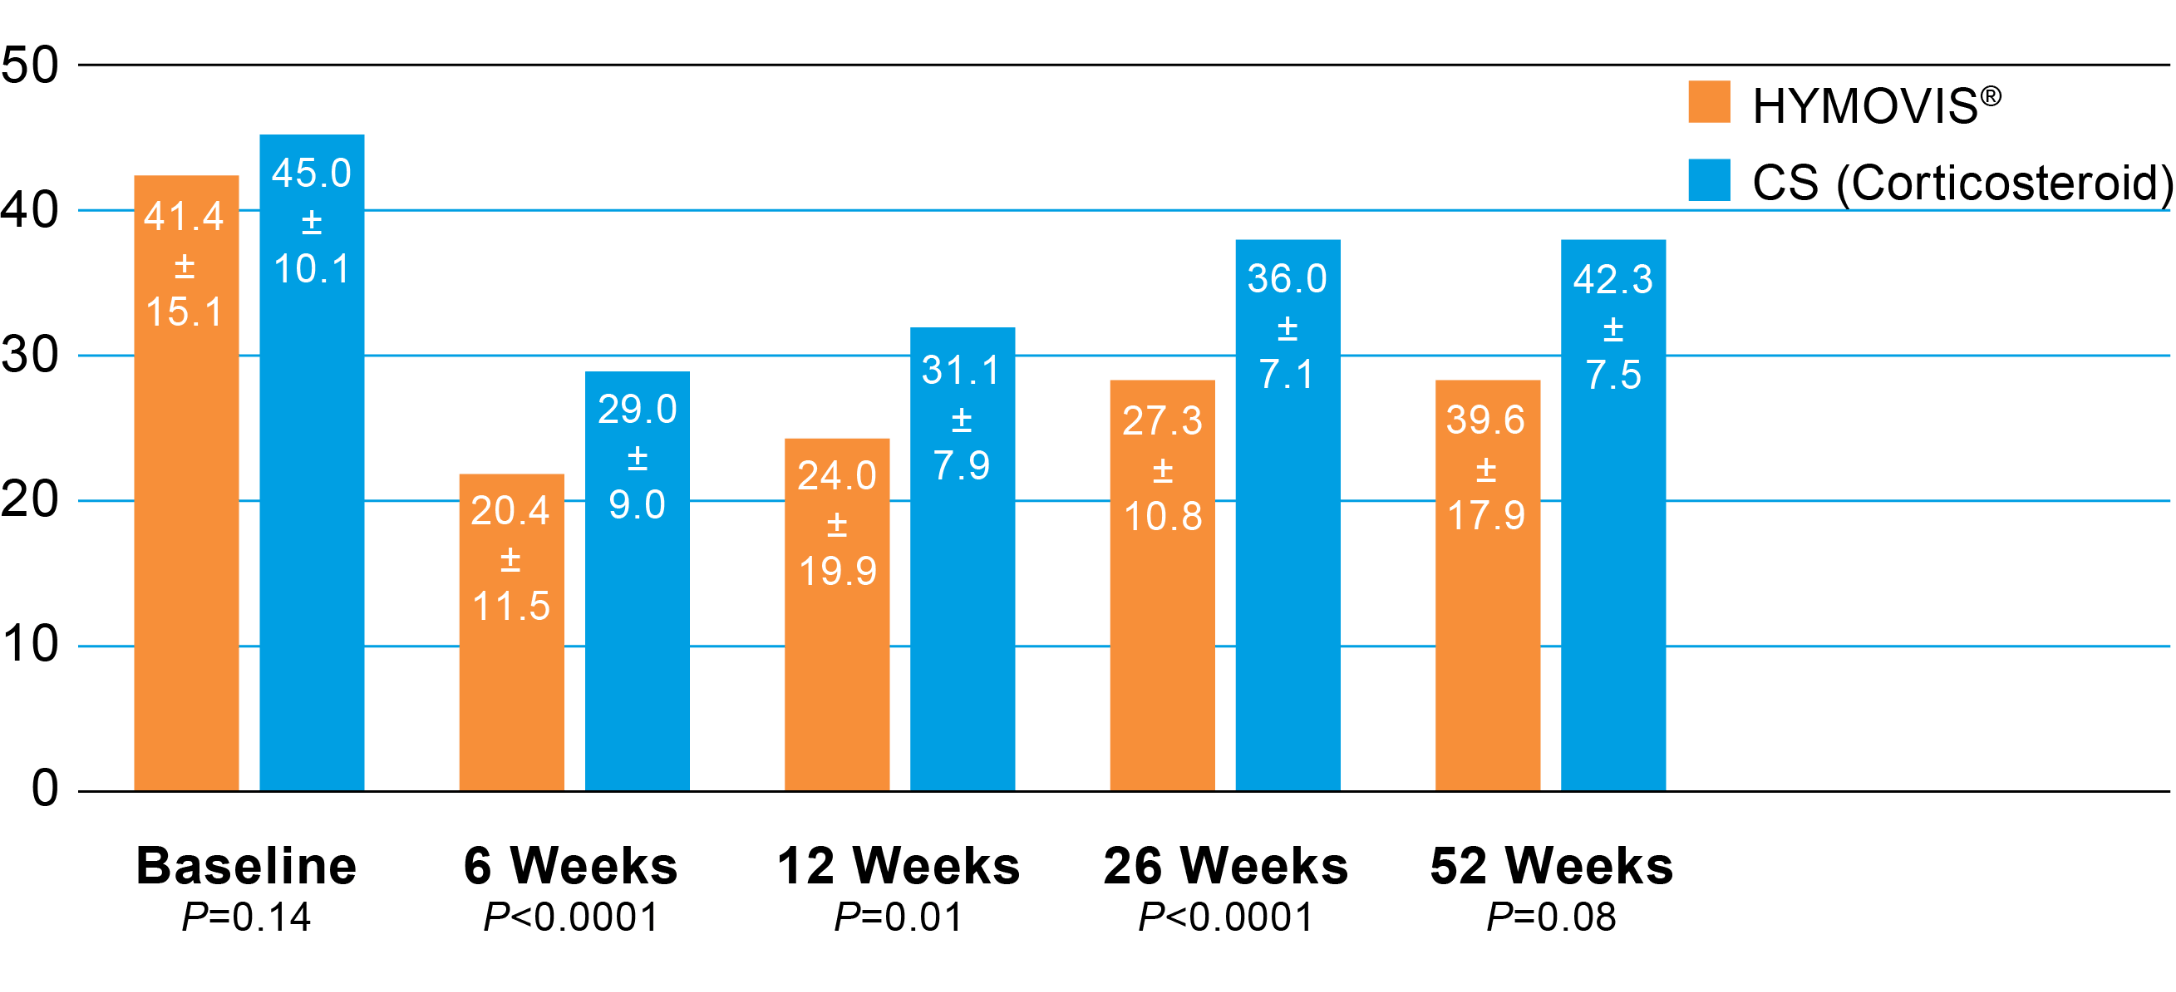 A bar graph showing the total WOMAC scores for HYMOVIS